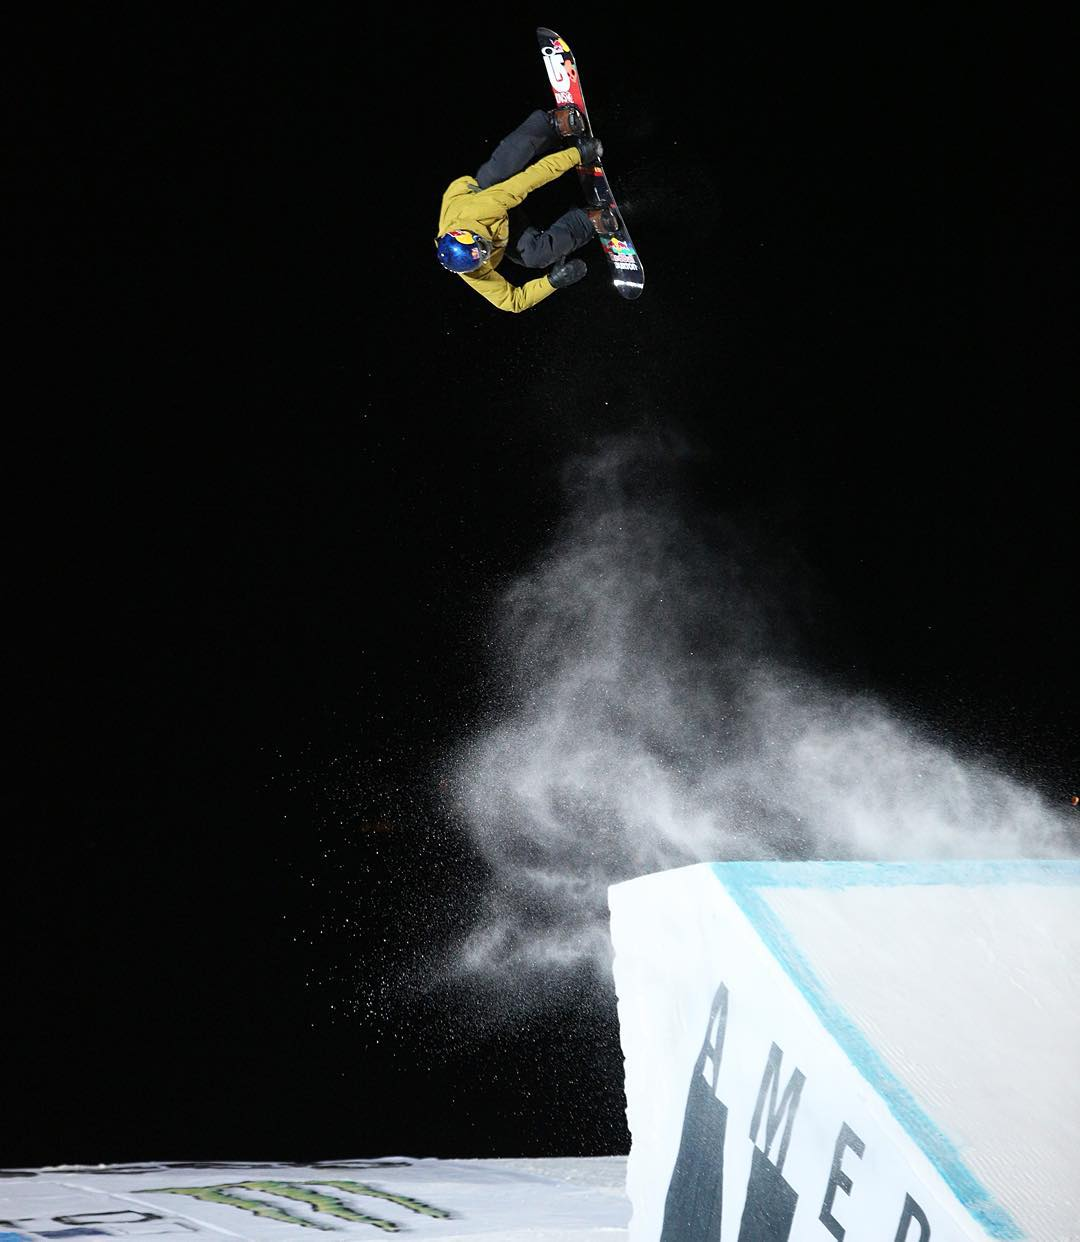 The third wave of athletes invited to compete at #XGamesOslo is official!  Click the link on our profile page to check it out.